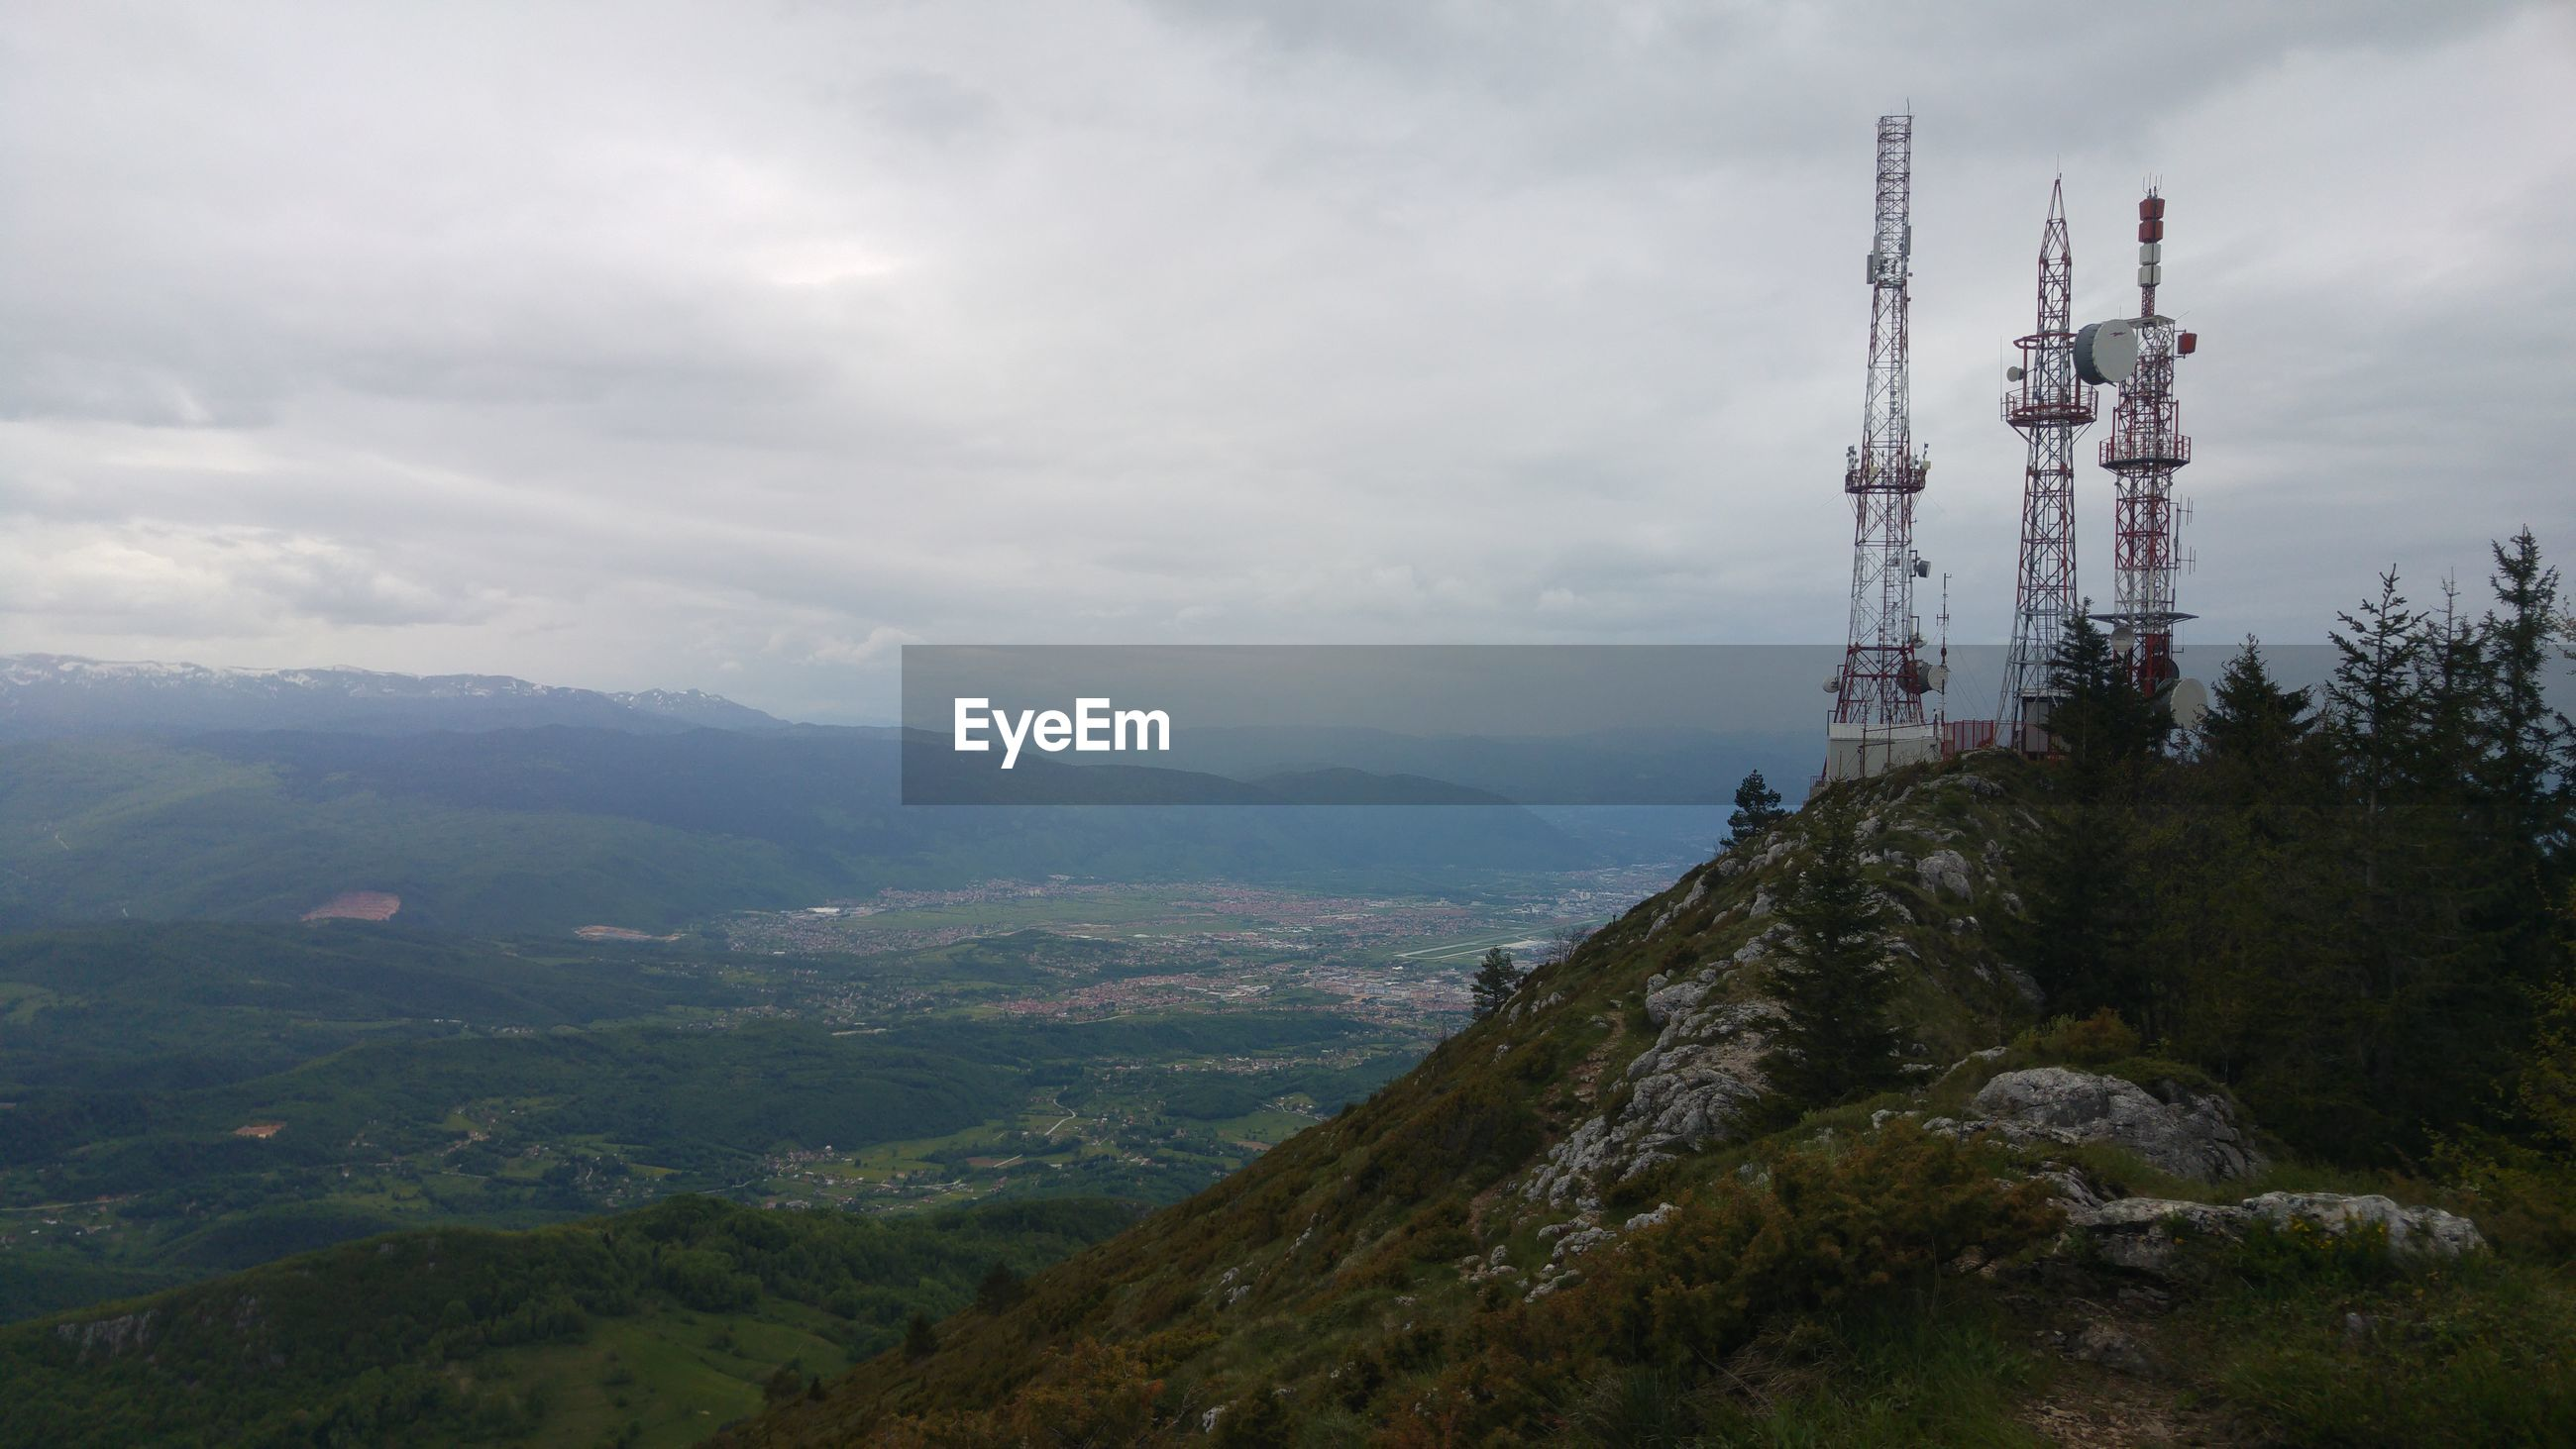 Aerial view of communications tower and mountains against sky